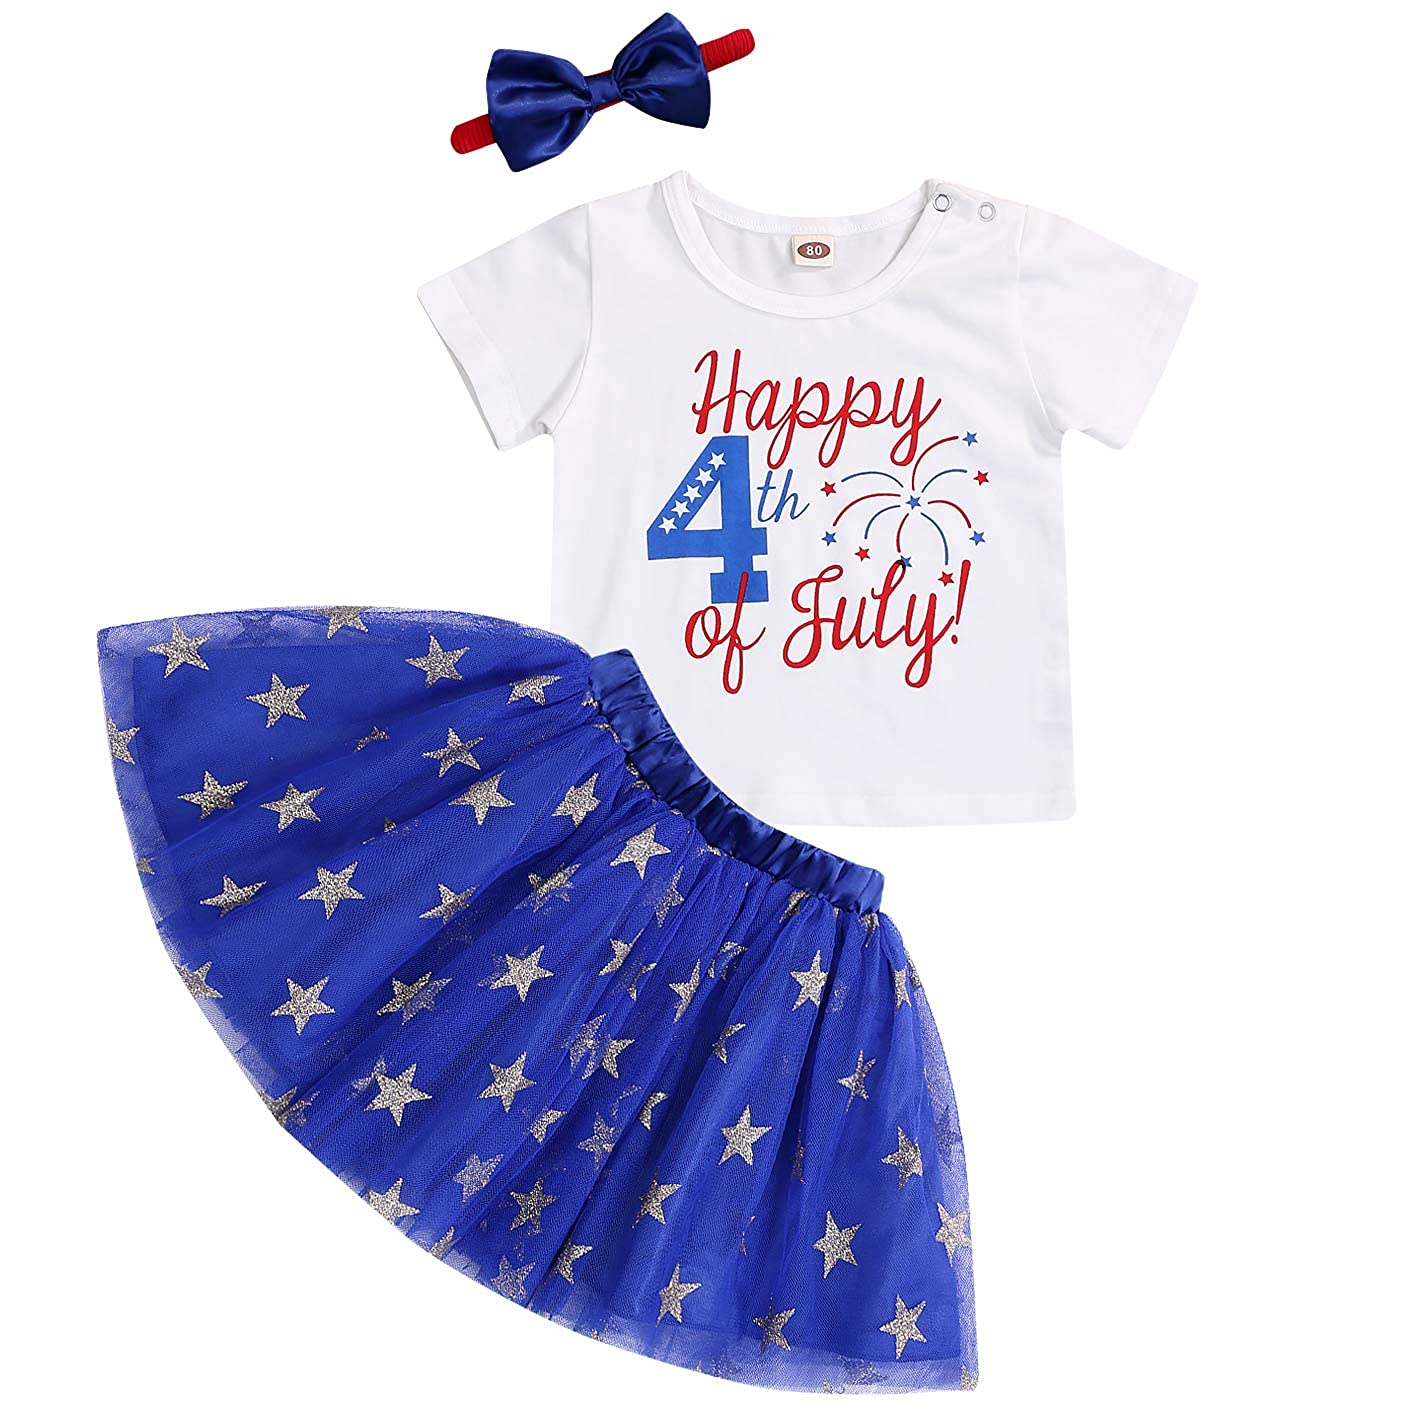 47cdc61a29dd7 Baby Girl My First 4th of July Outfits Short Sleeve Romper+Tutu  Skirt+Headbands 4PCS Clothes Set